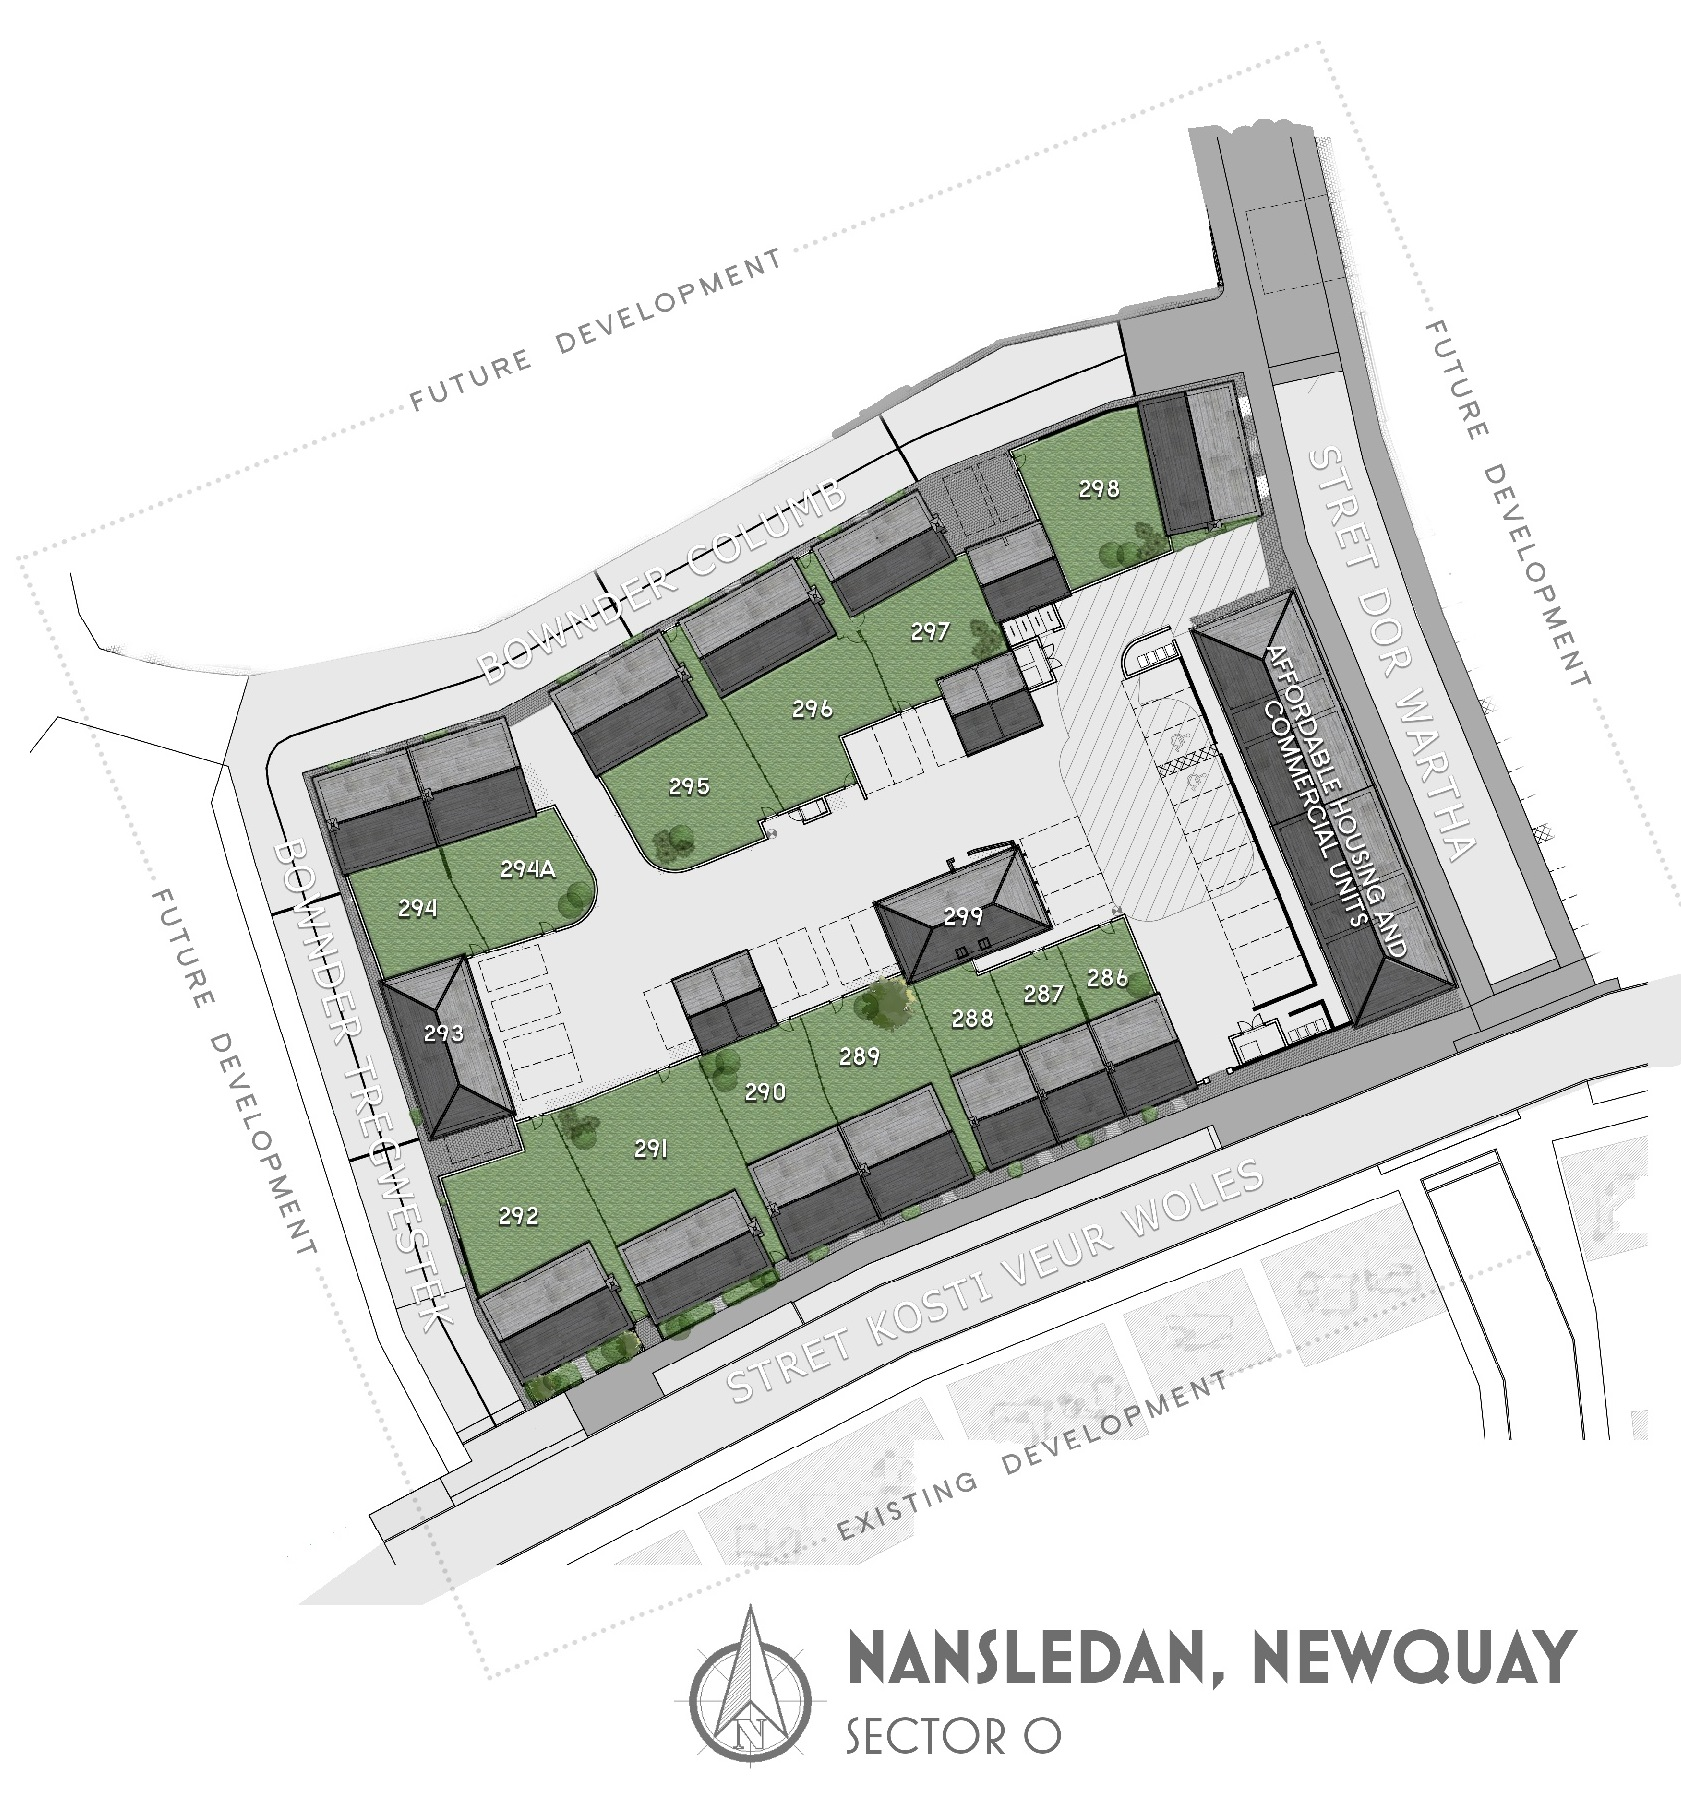 Sector O site plan2